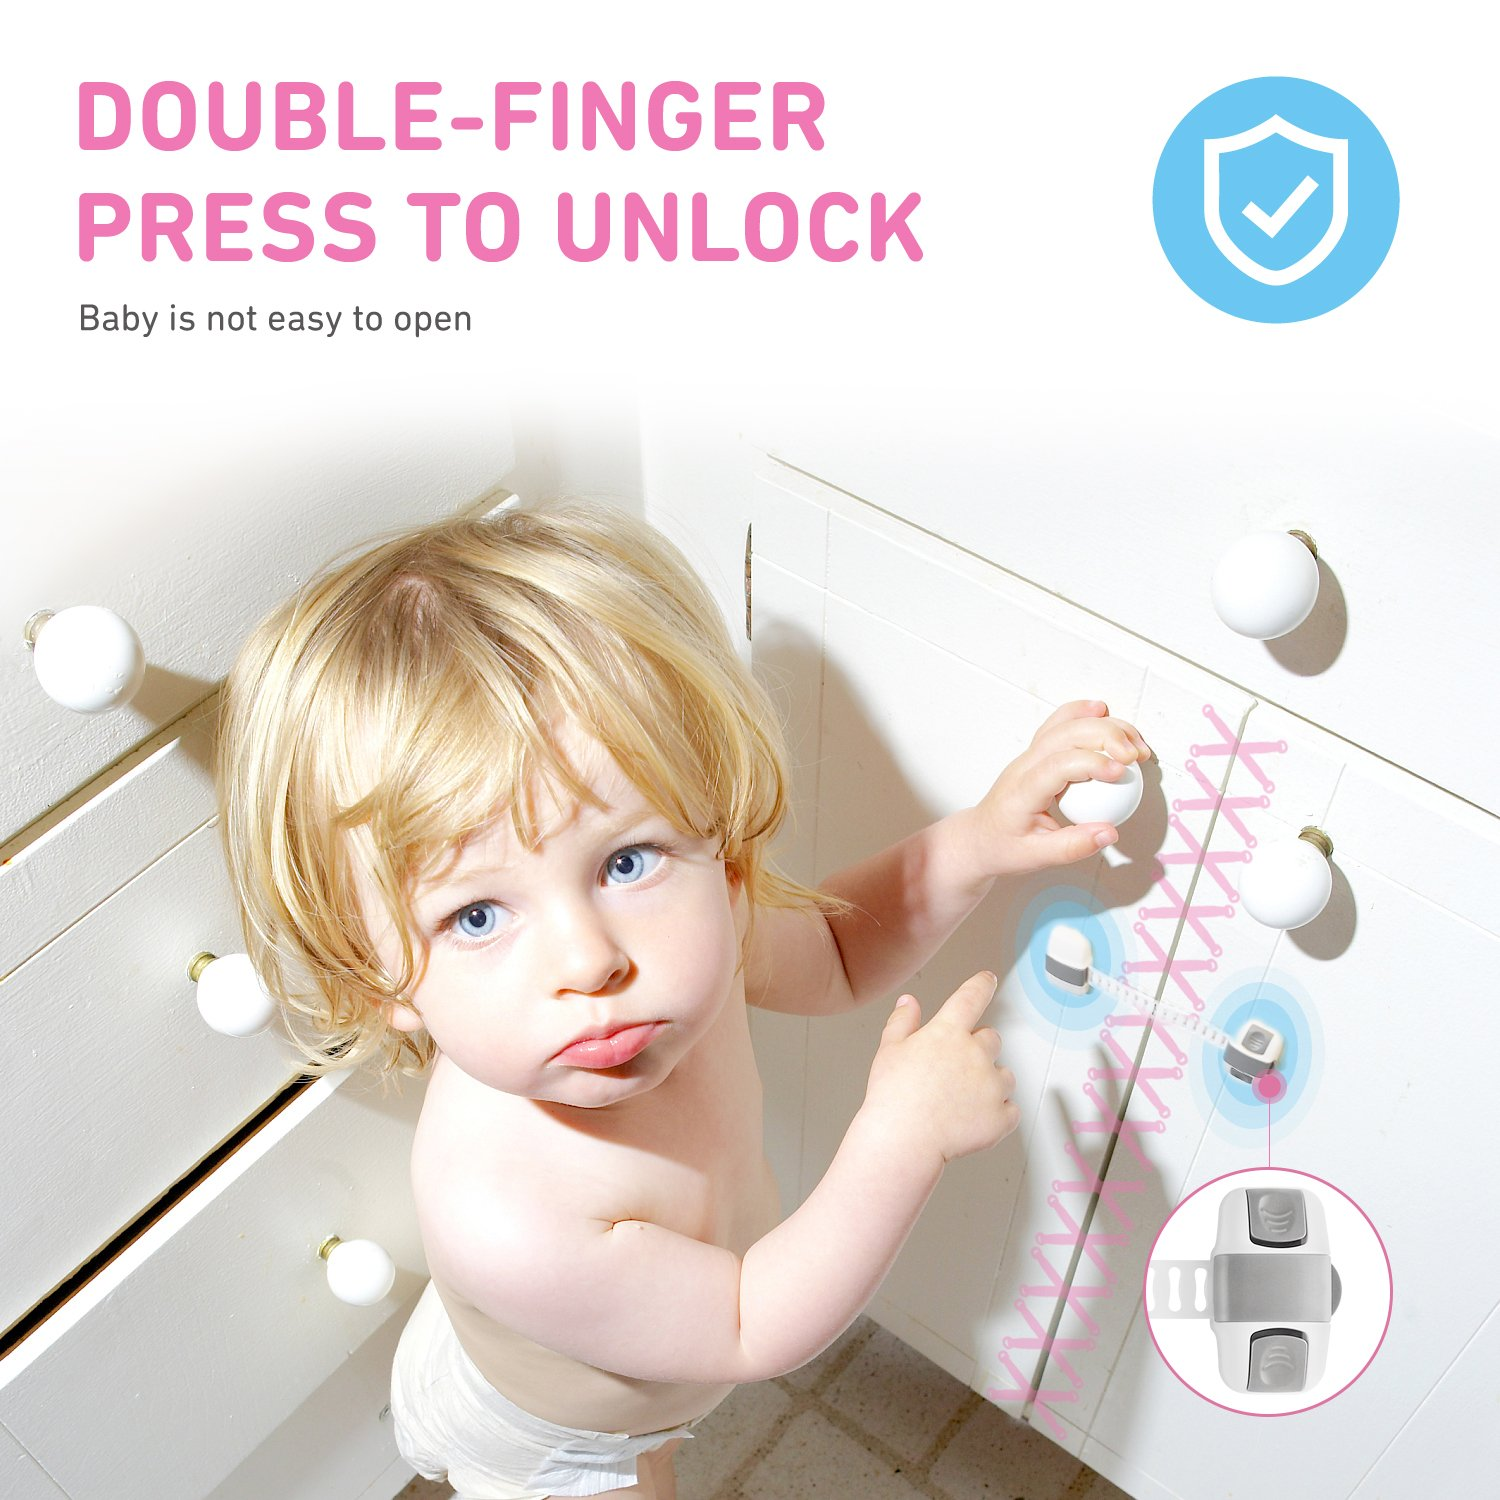 Drawers |Child Proof Safety Lock with Double-Finger Press Design and Adjustable Strap |Latches to Baby Proofing Cabinets Toilet Seat and Fridge 6 Pack Child Safety Cabinet Locks